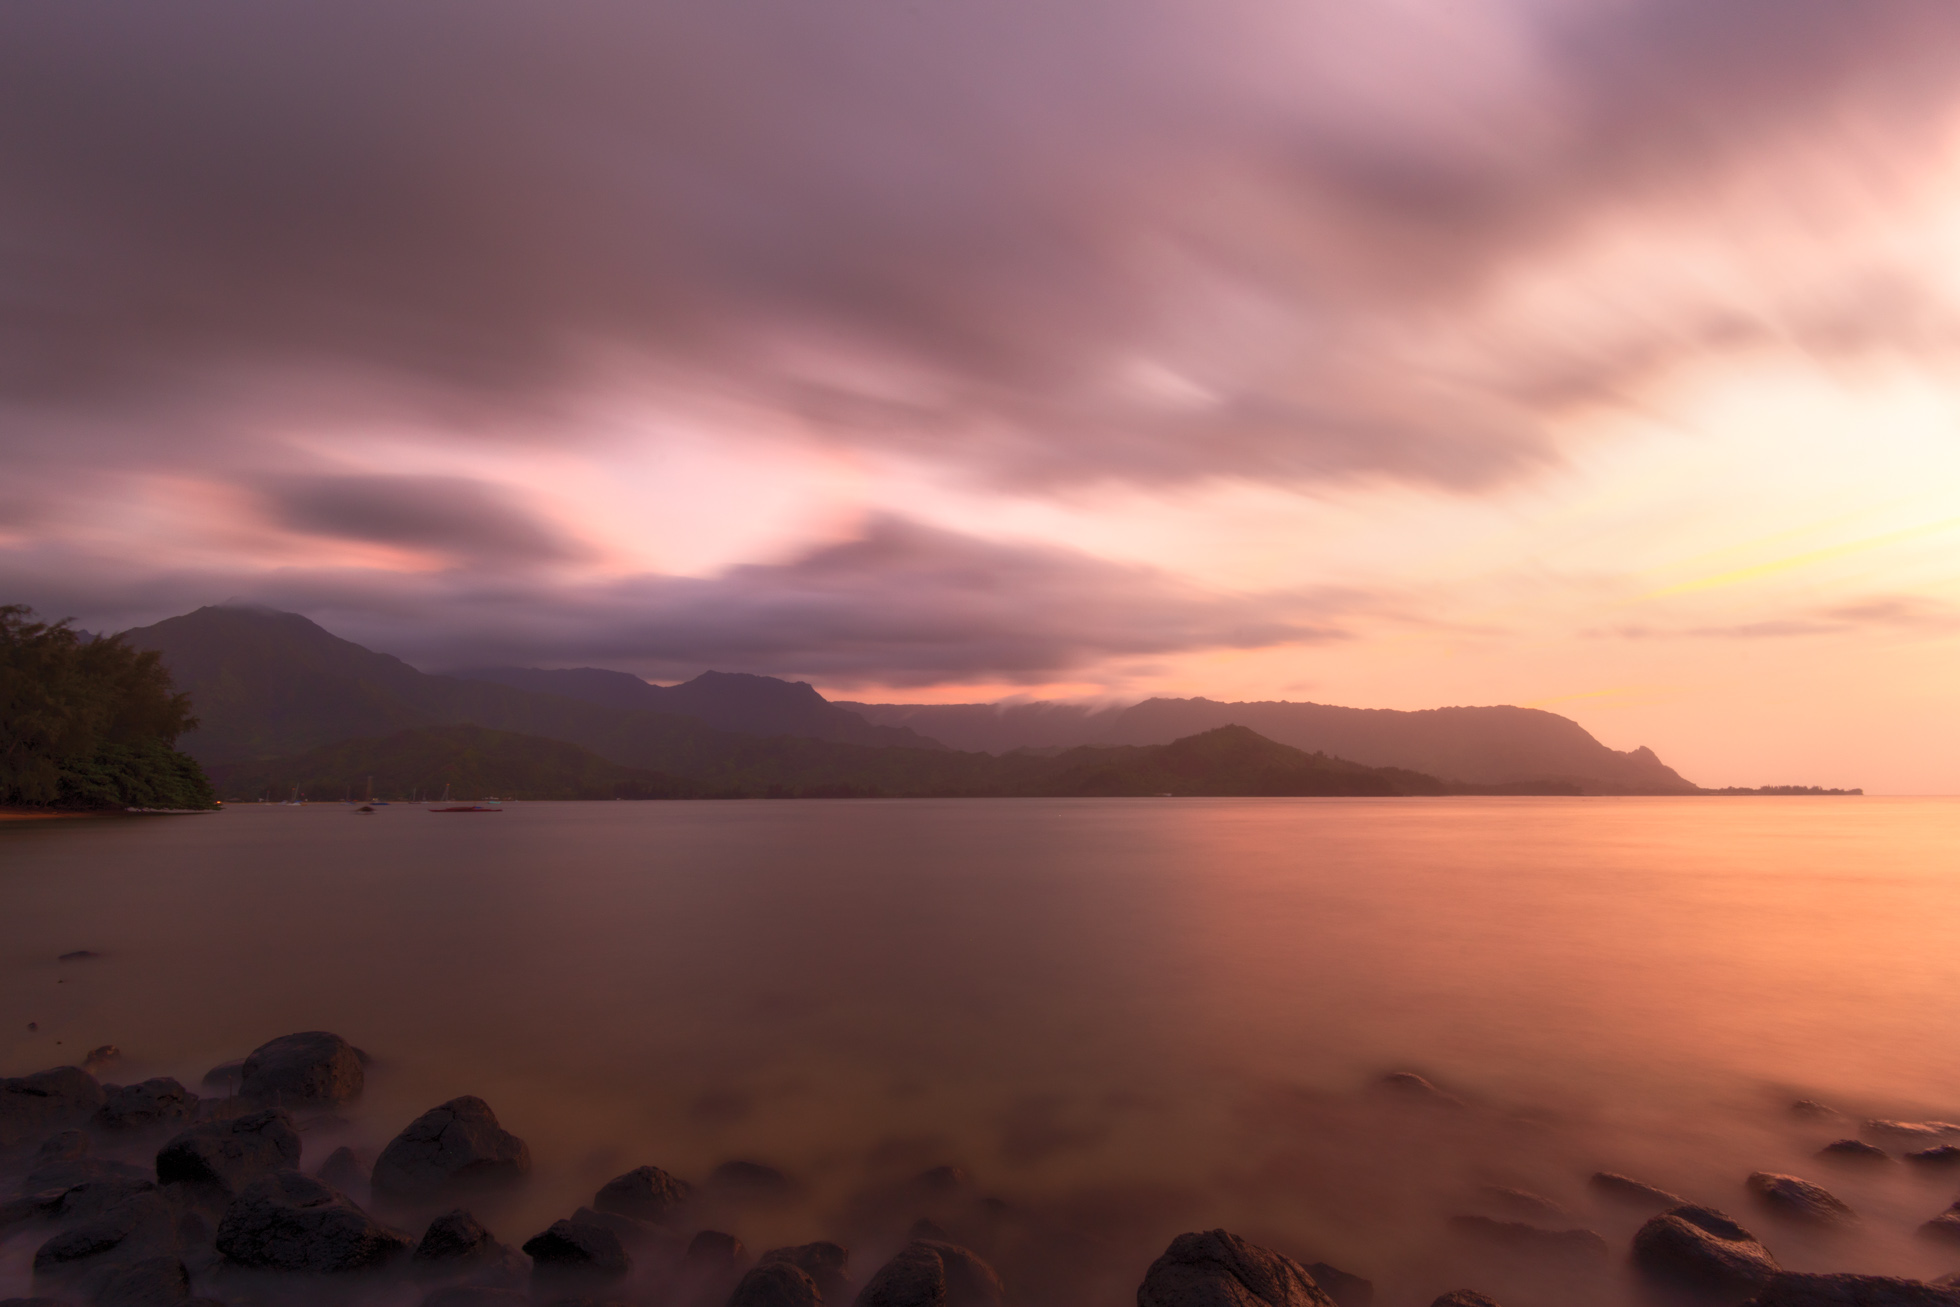 Long Exposure during a gorgeous sunset on the island of Kauai